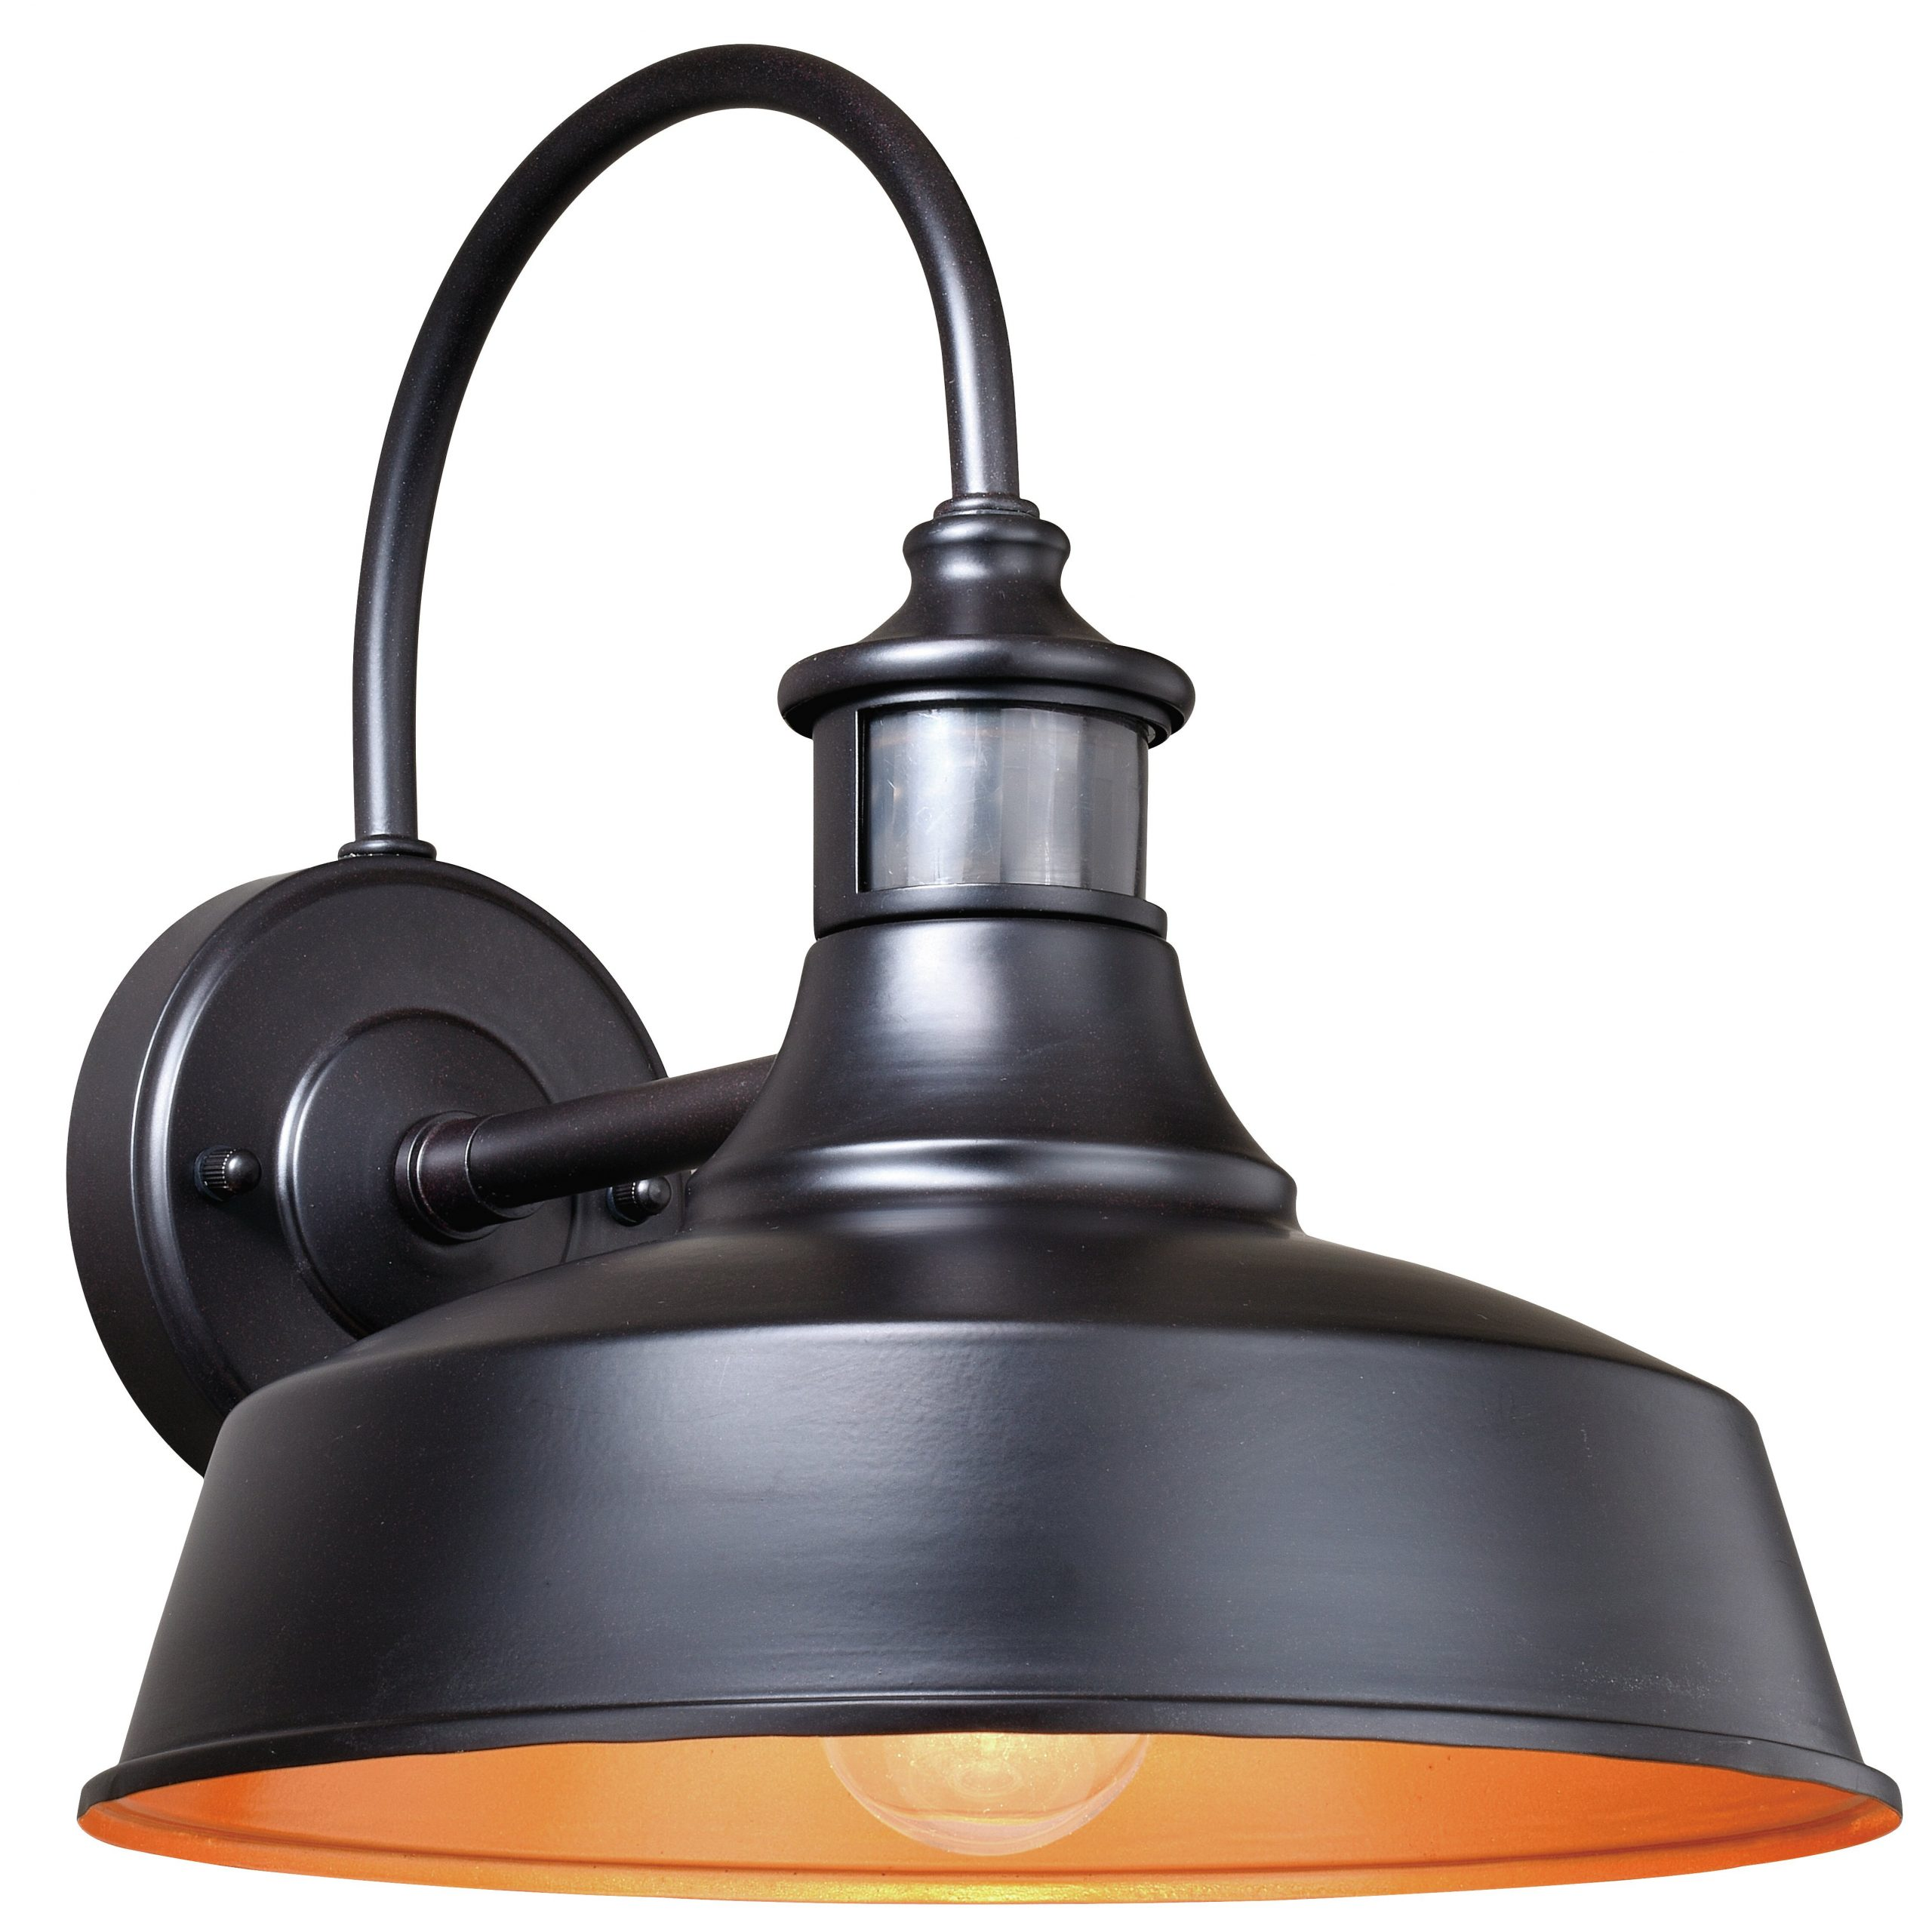 Ziebarth Outdoor Barn Light With Motion Sensor – Outdoor Within Popular Aleena Outdoor Barn Lights (View 7 of 20)